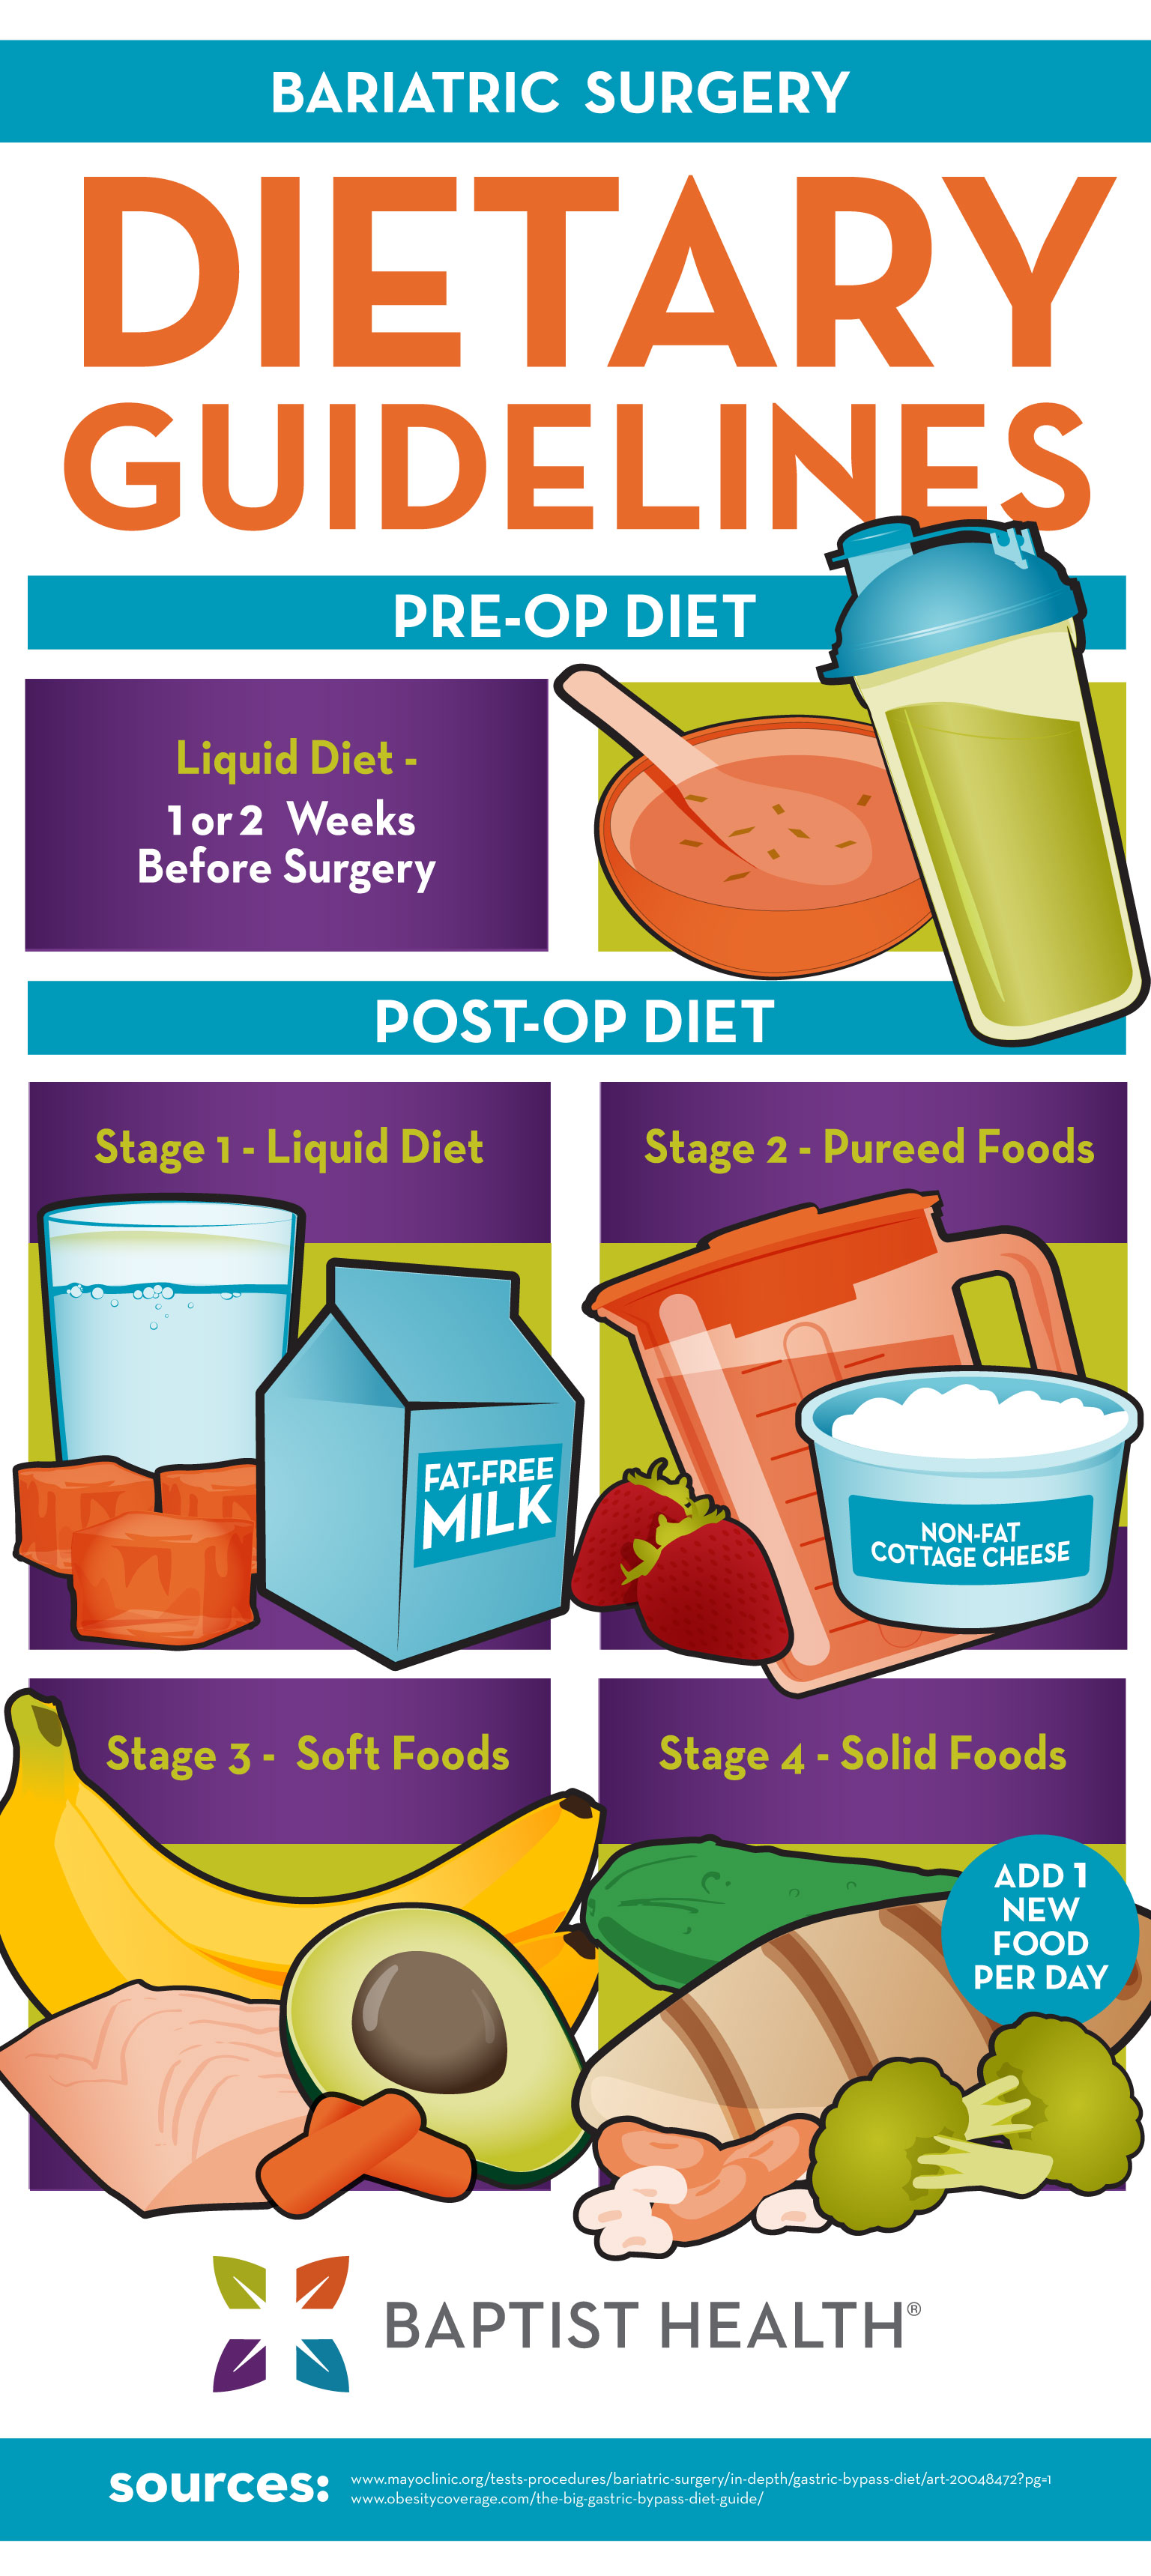 Gastric bypass surgery nutrition guidelines